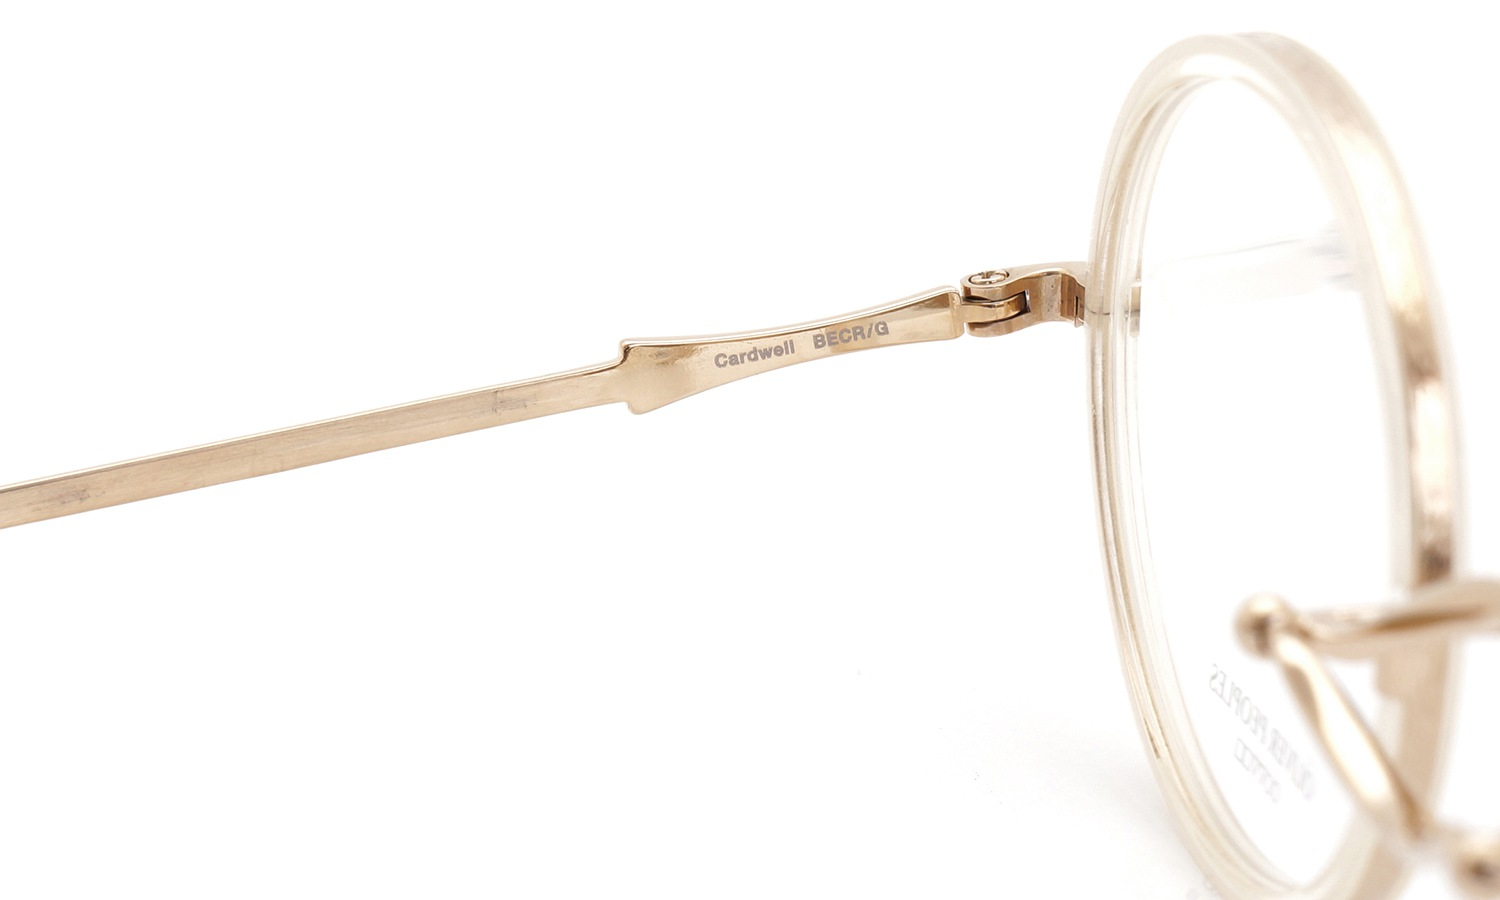 OLIVER PEOPLES Cardwell BECR/G